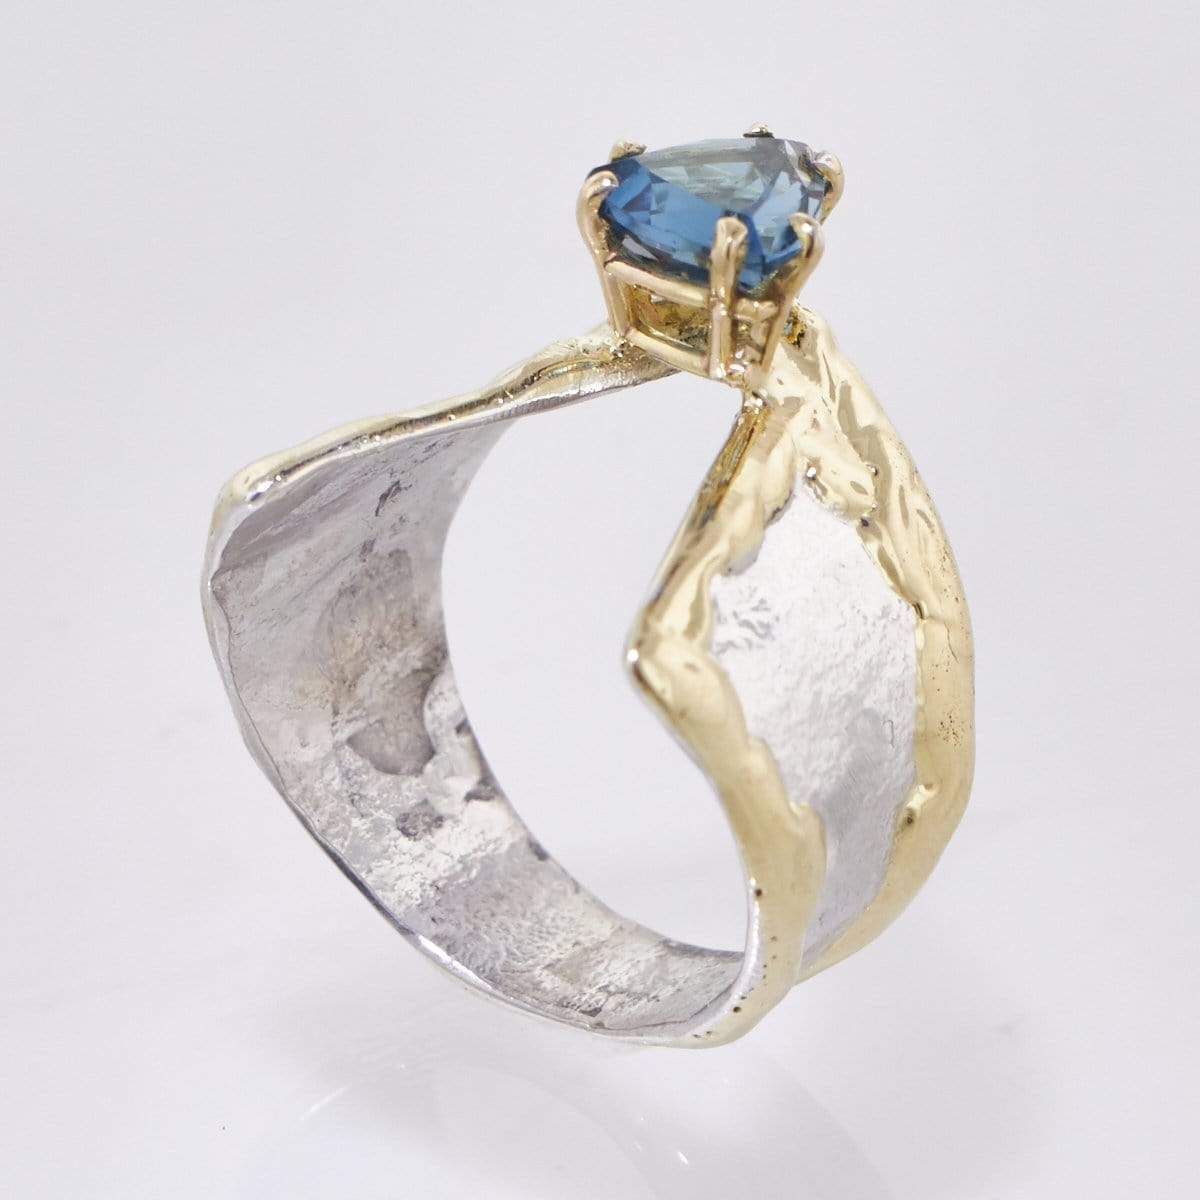 14K Gold & Crystalline Silver London Blue Topaz Ring - 33261-Fusion Designs-Renee Taylor Gallery